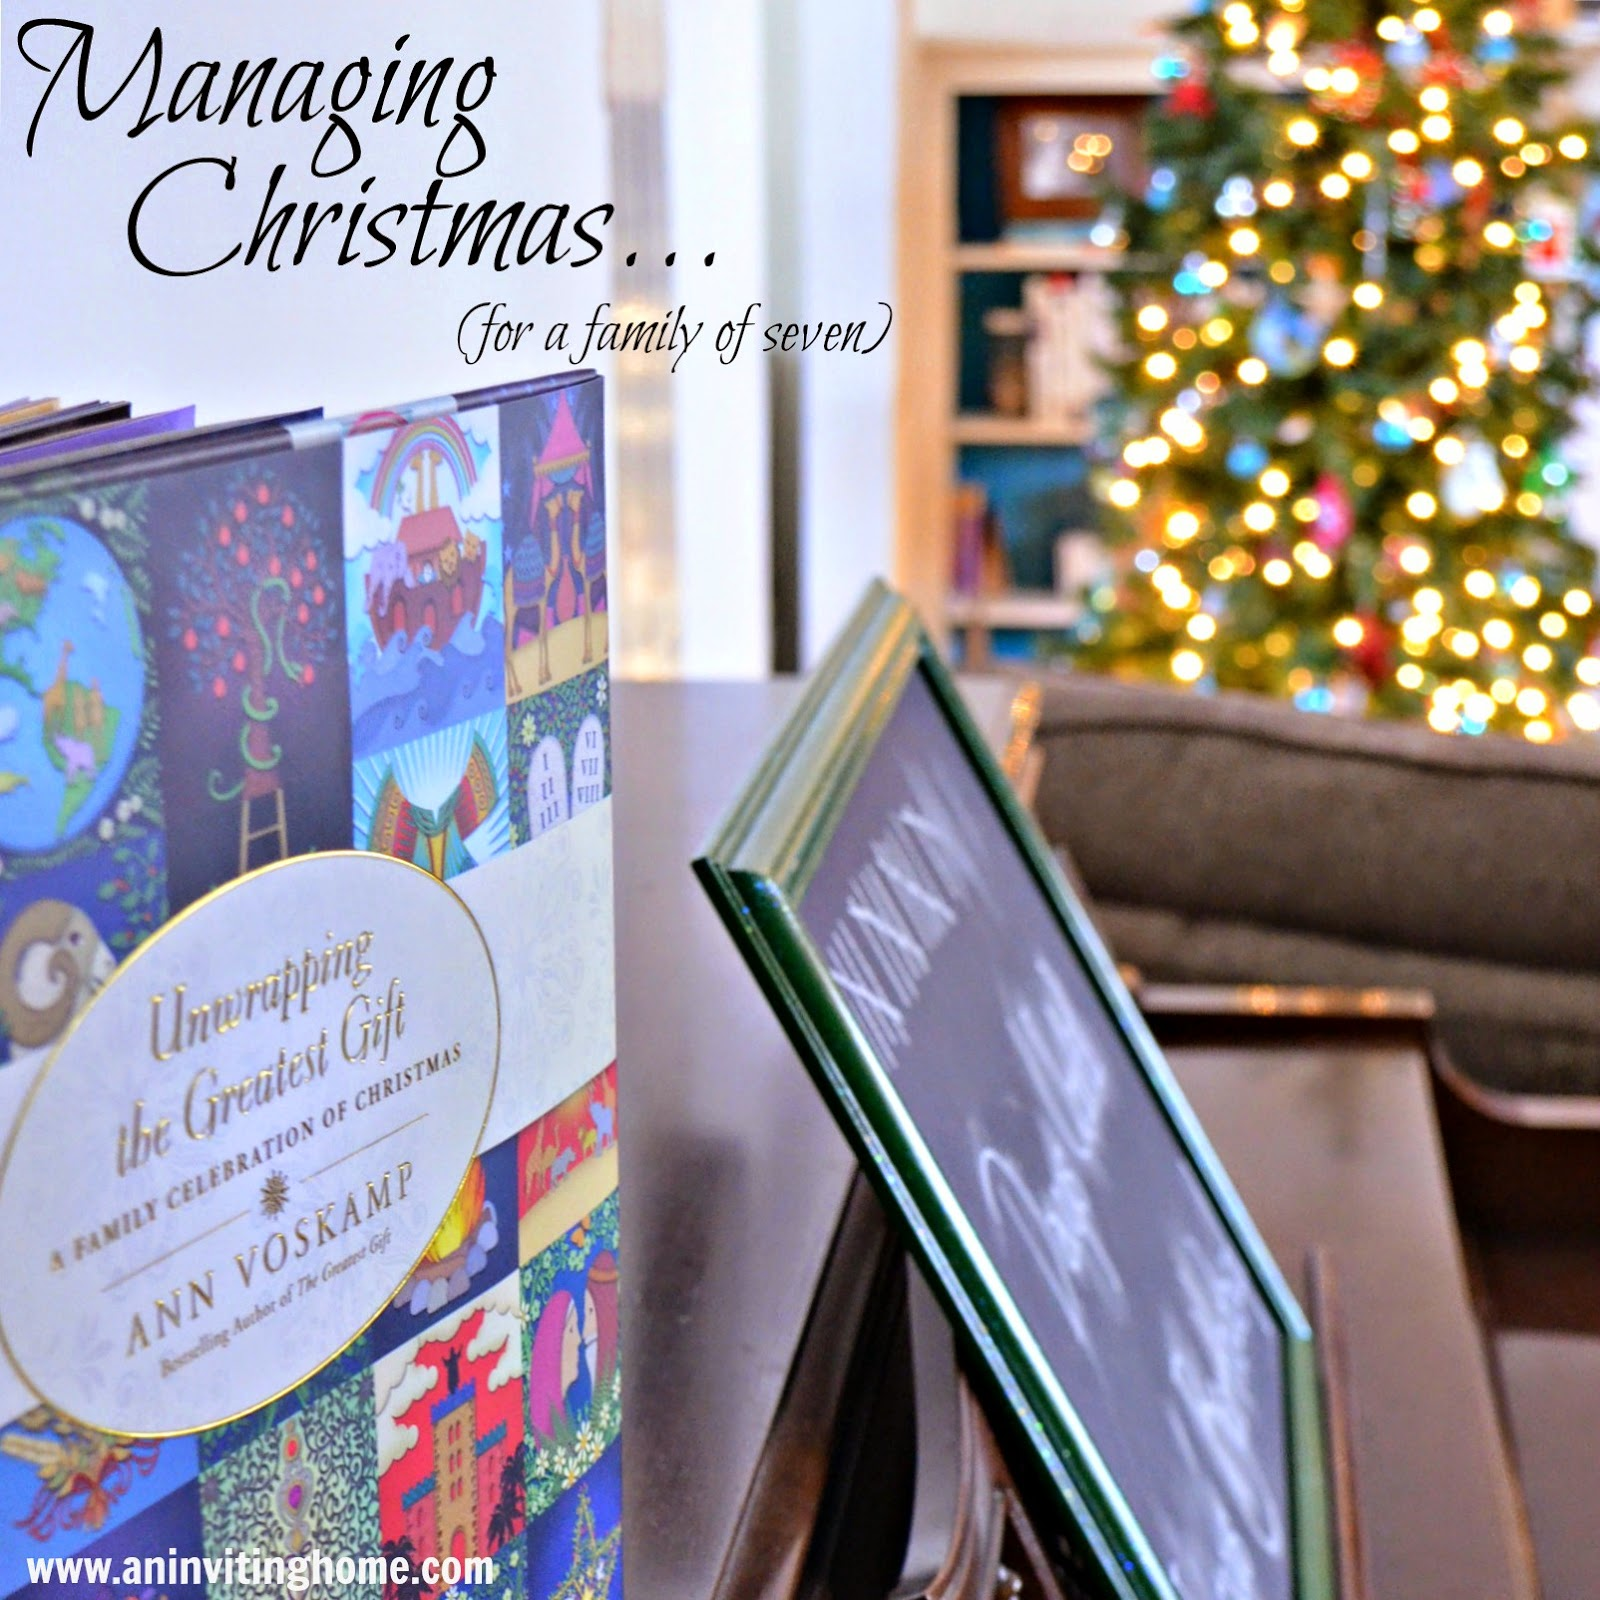 Managing Christmas for a family of seven